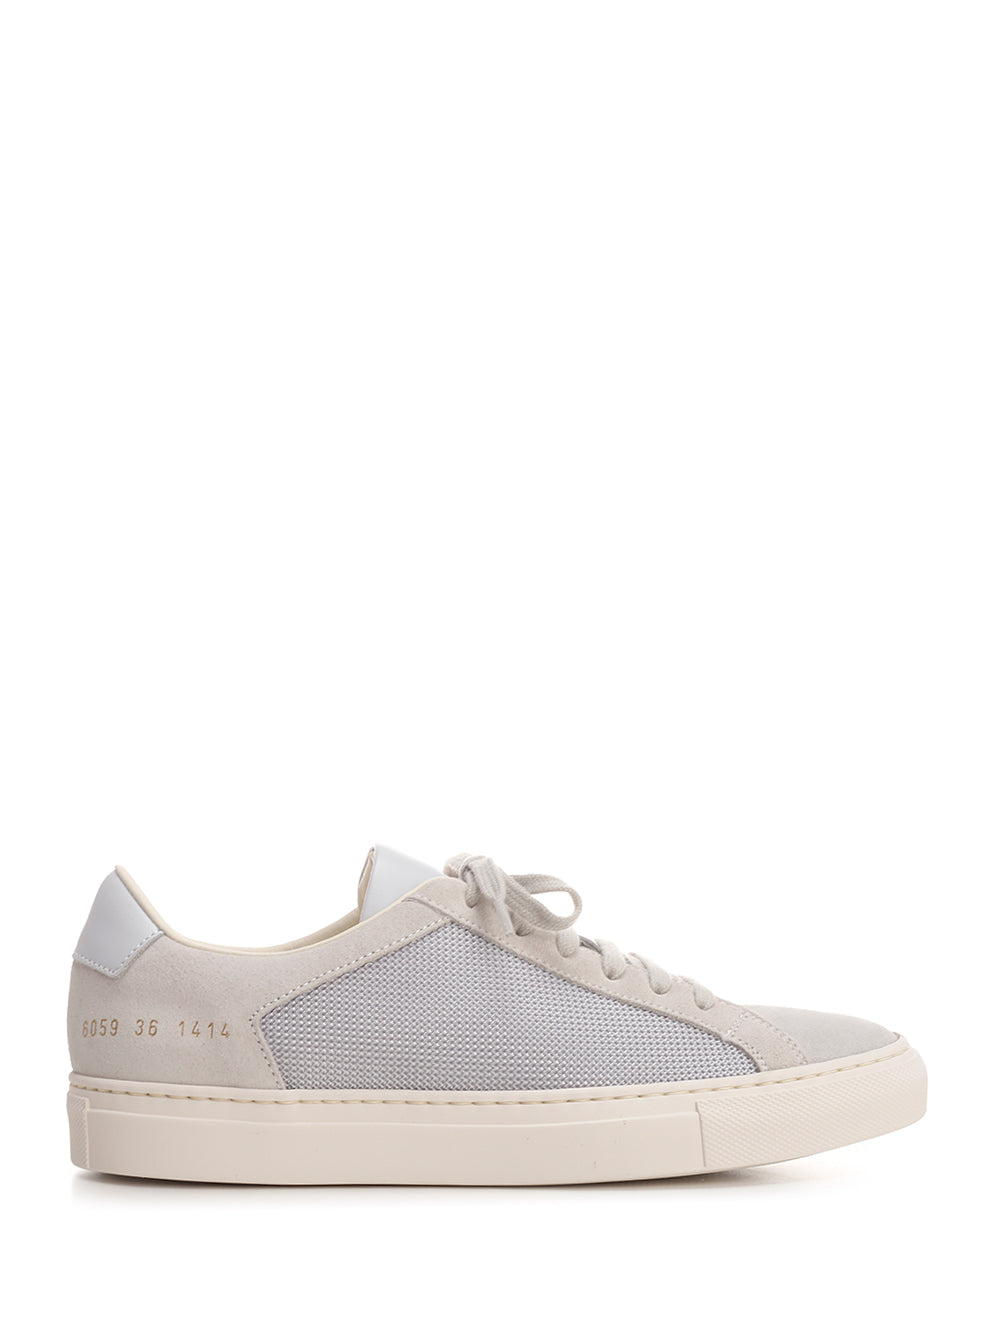 Common Projects Low tops COMMON PROJECTS RETRO SUMMER EDITION SNEAKERS